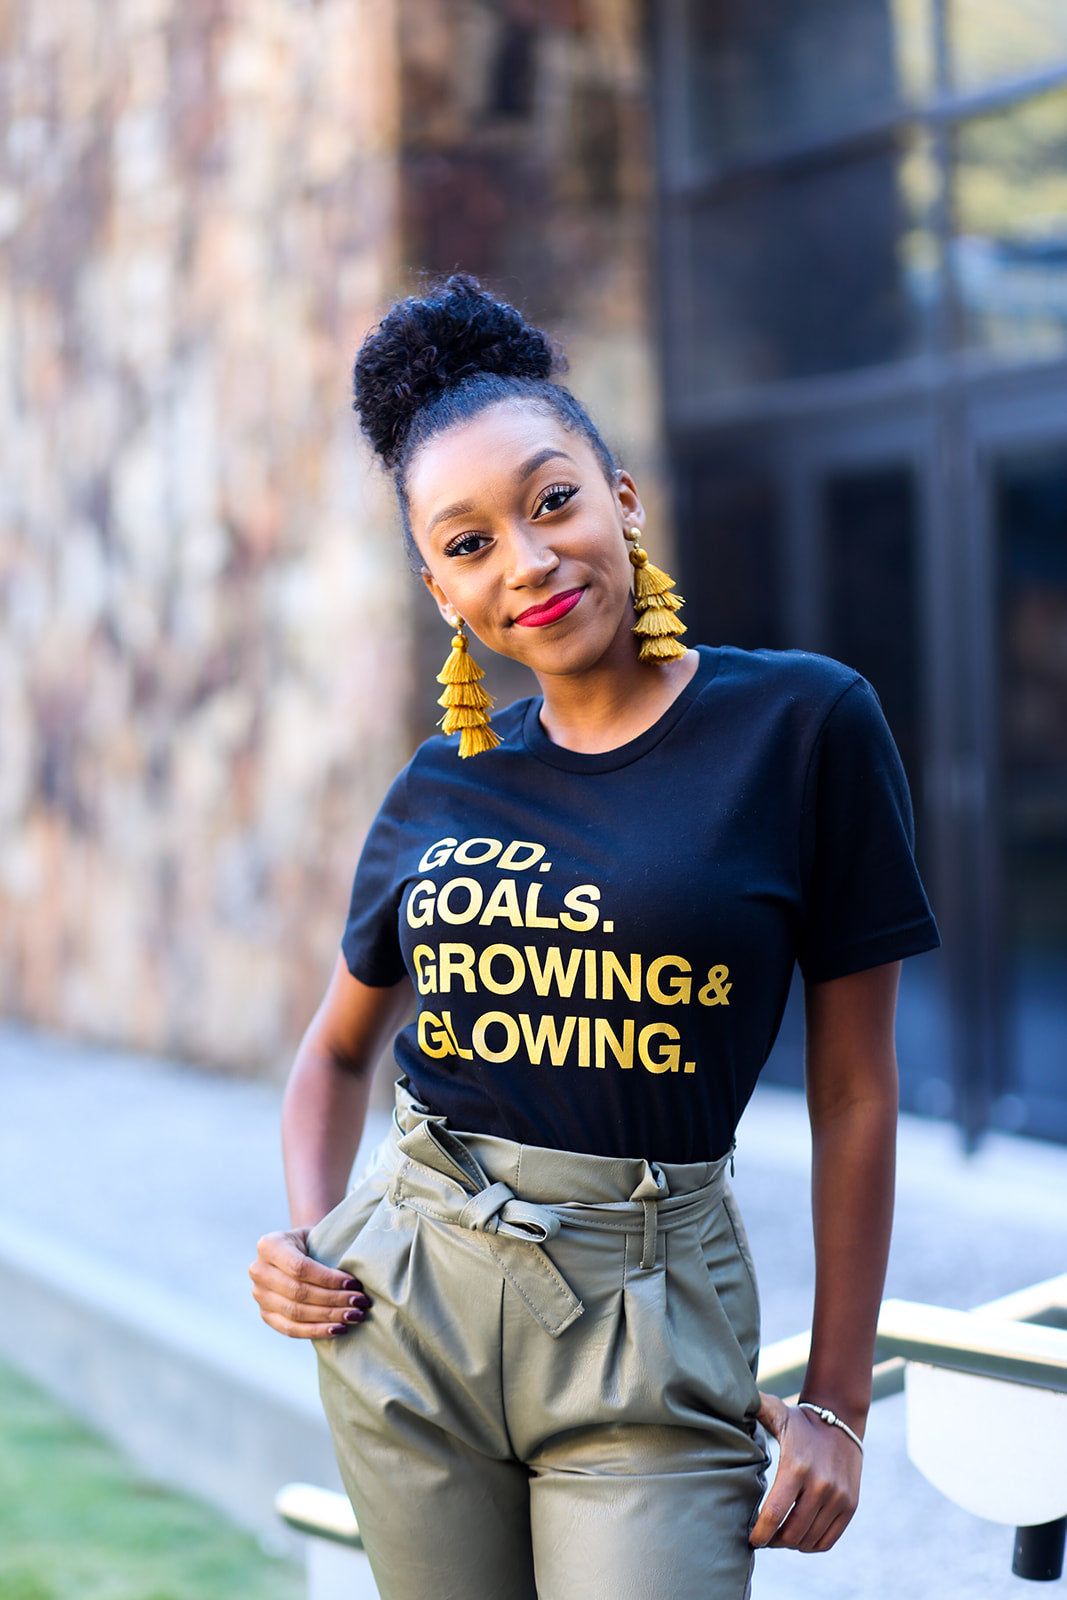 'GOD and GOALS' Tee